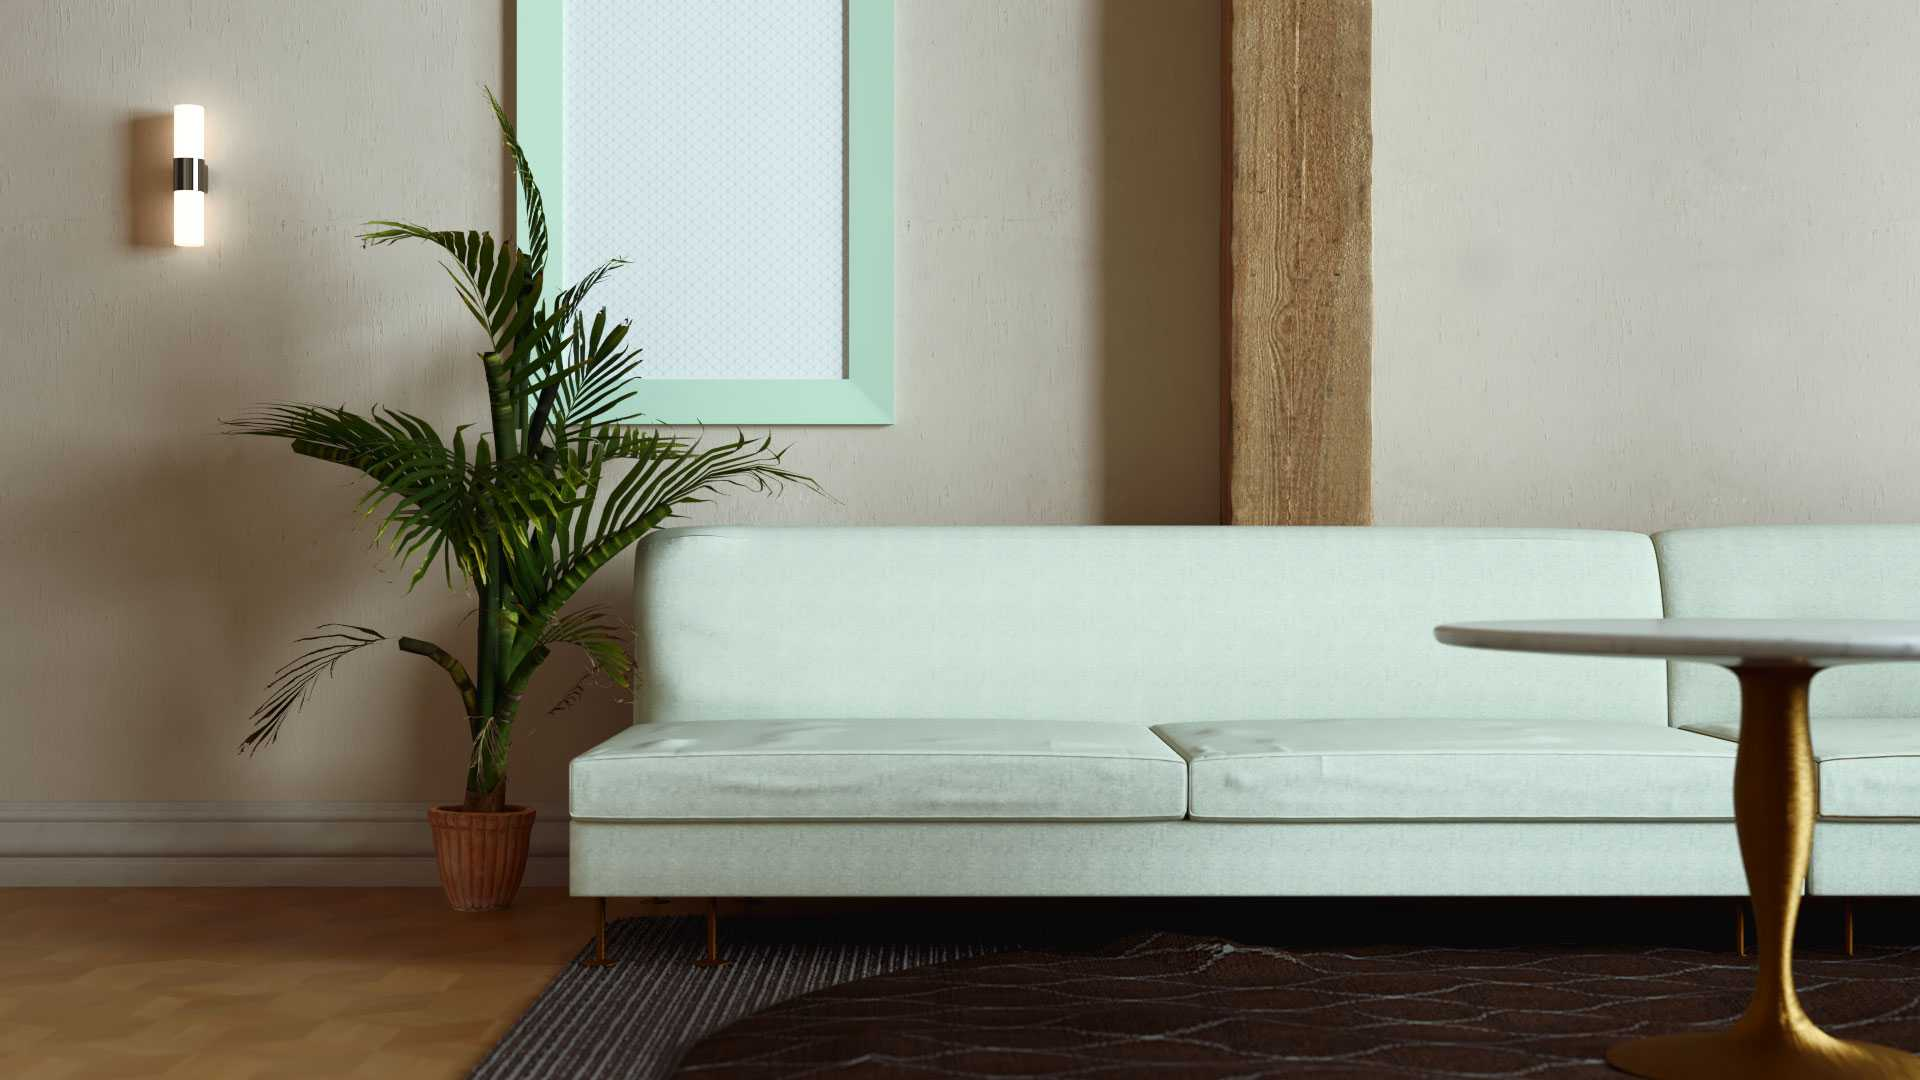 Photorealistic Couch 3D Render